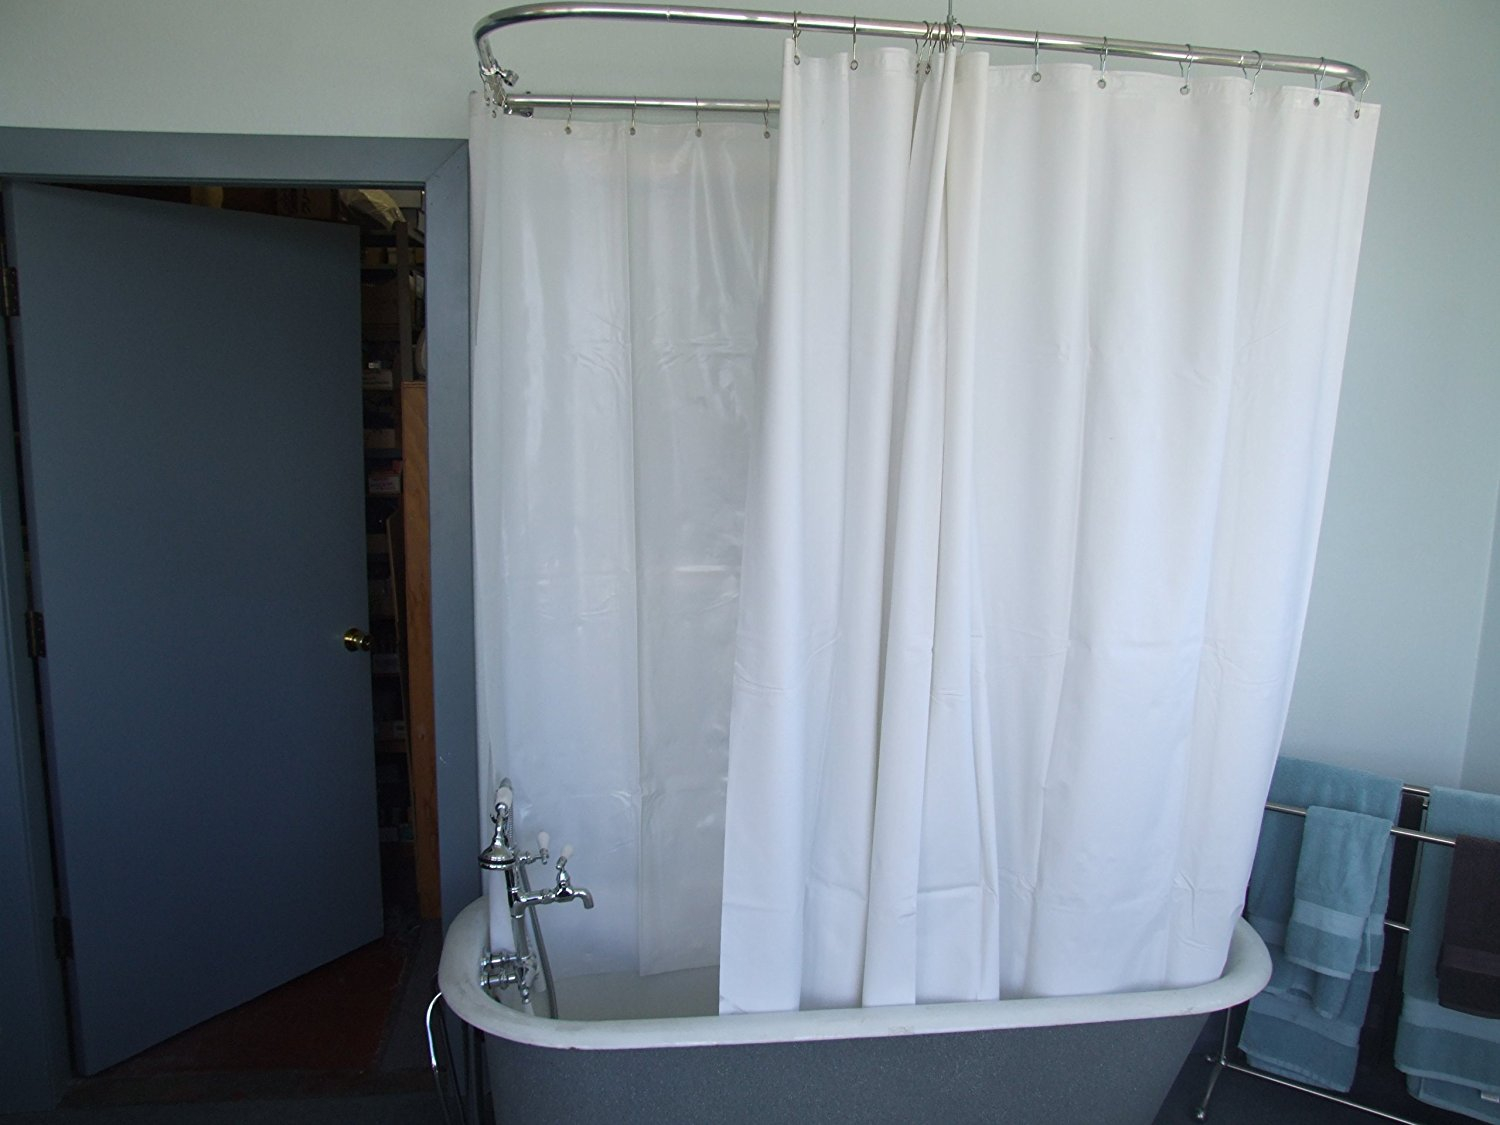 Extra Wide Shower Curtain Liner For Clawfoot Tub • Shower Curtains Ideas